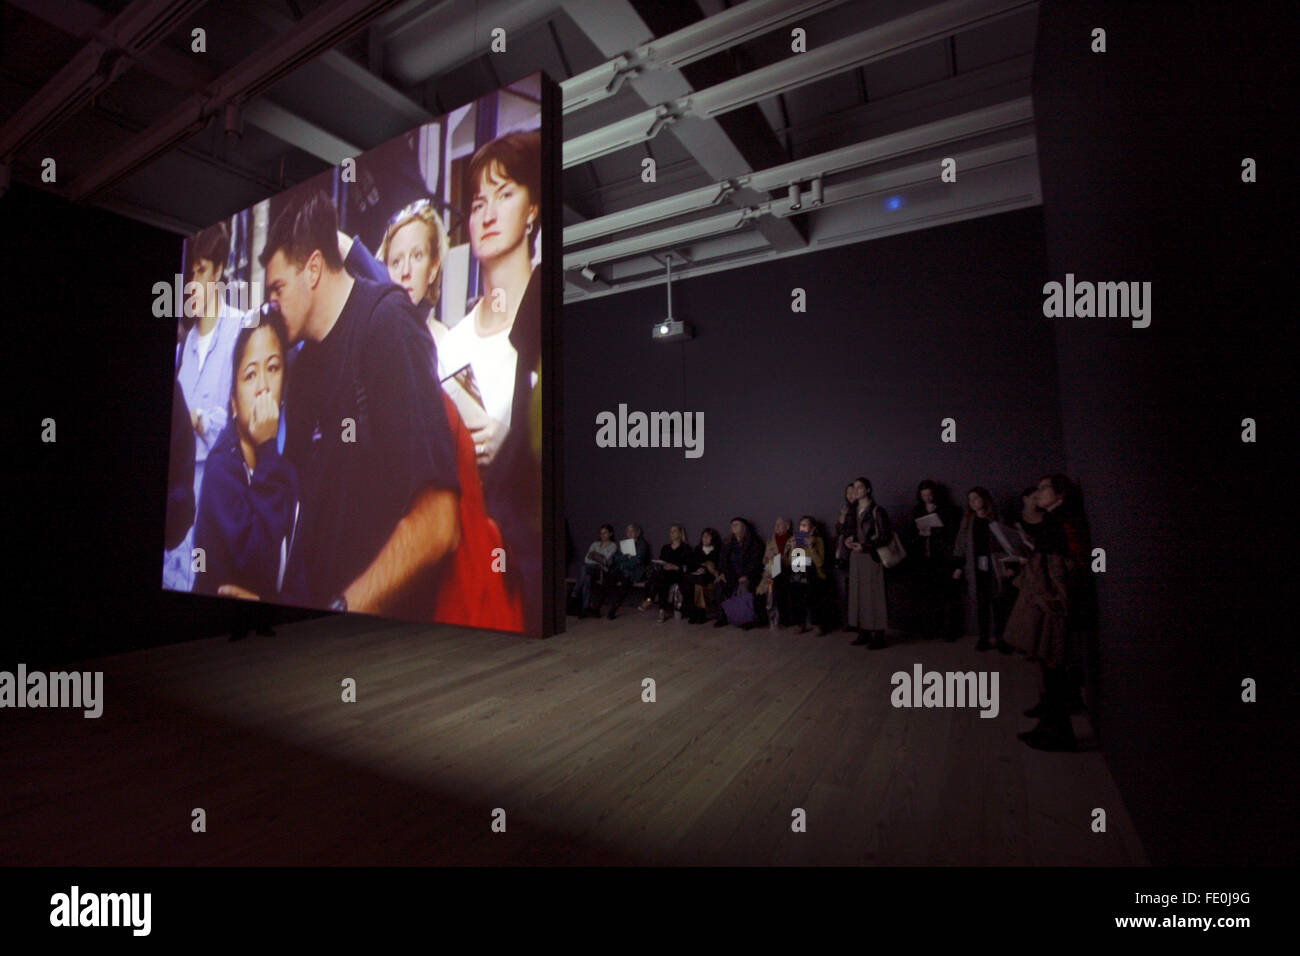 New York City, NY, USA. 3rd February, 2016. An installation showing the faces of people reacting to events on 9/11 - Stock Image